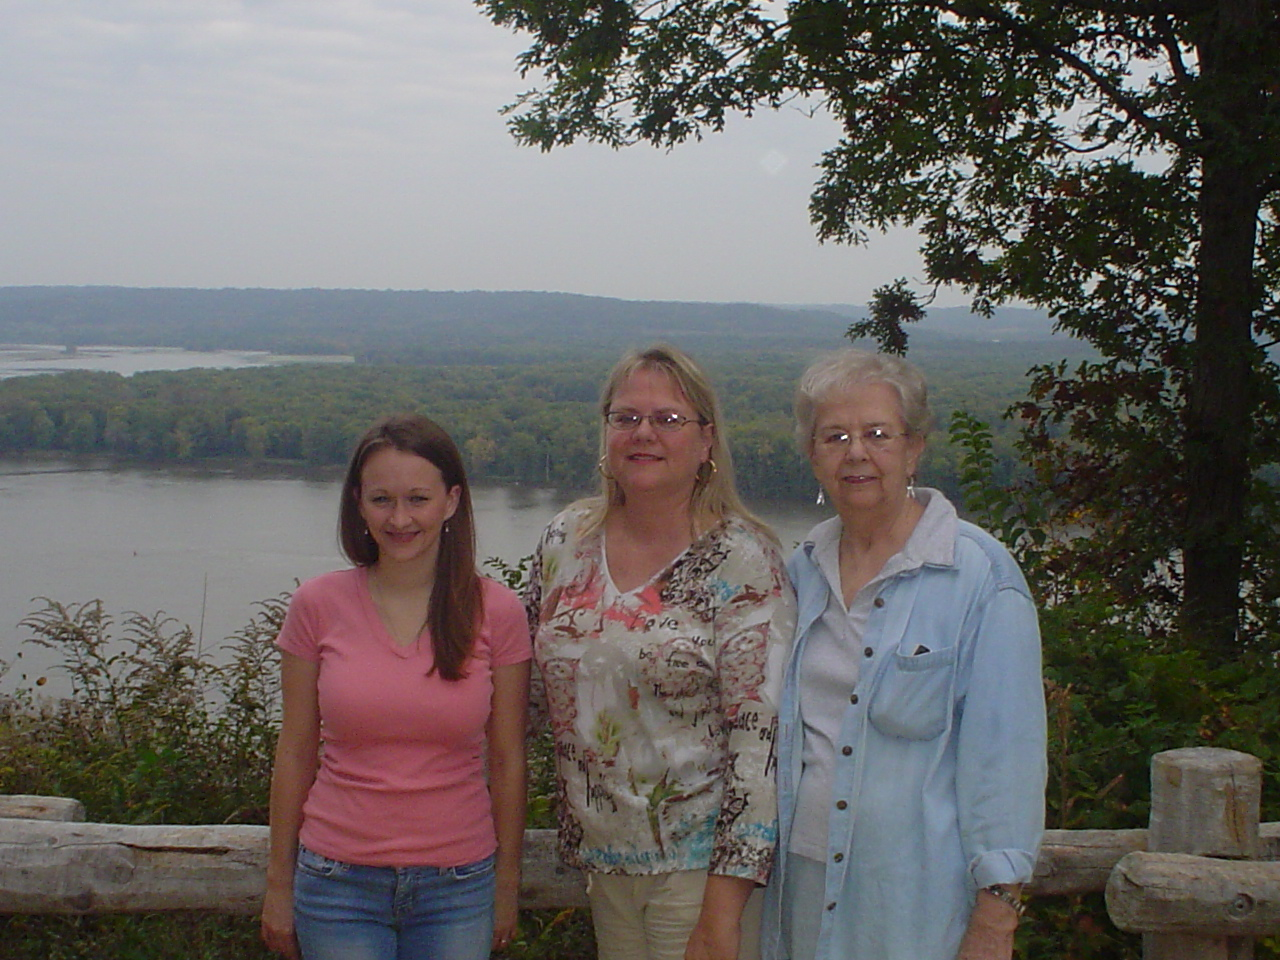 Grandma, Mom and Sarah in Bellevue IA. We had so much fun that day.